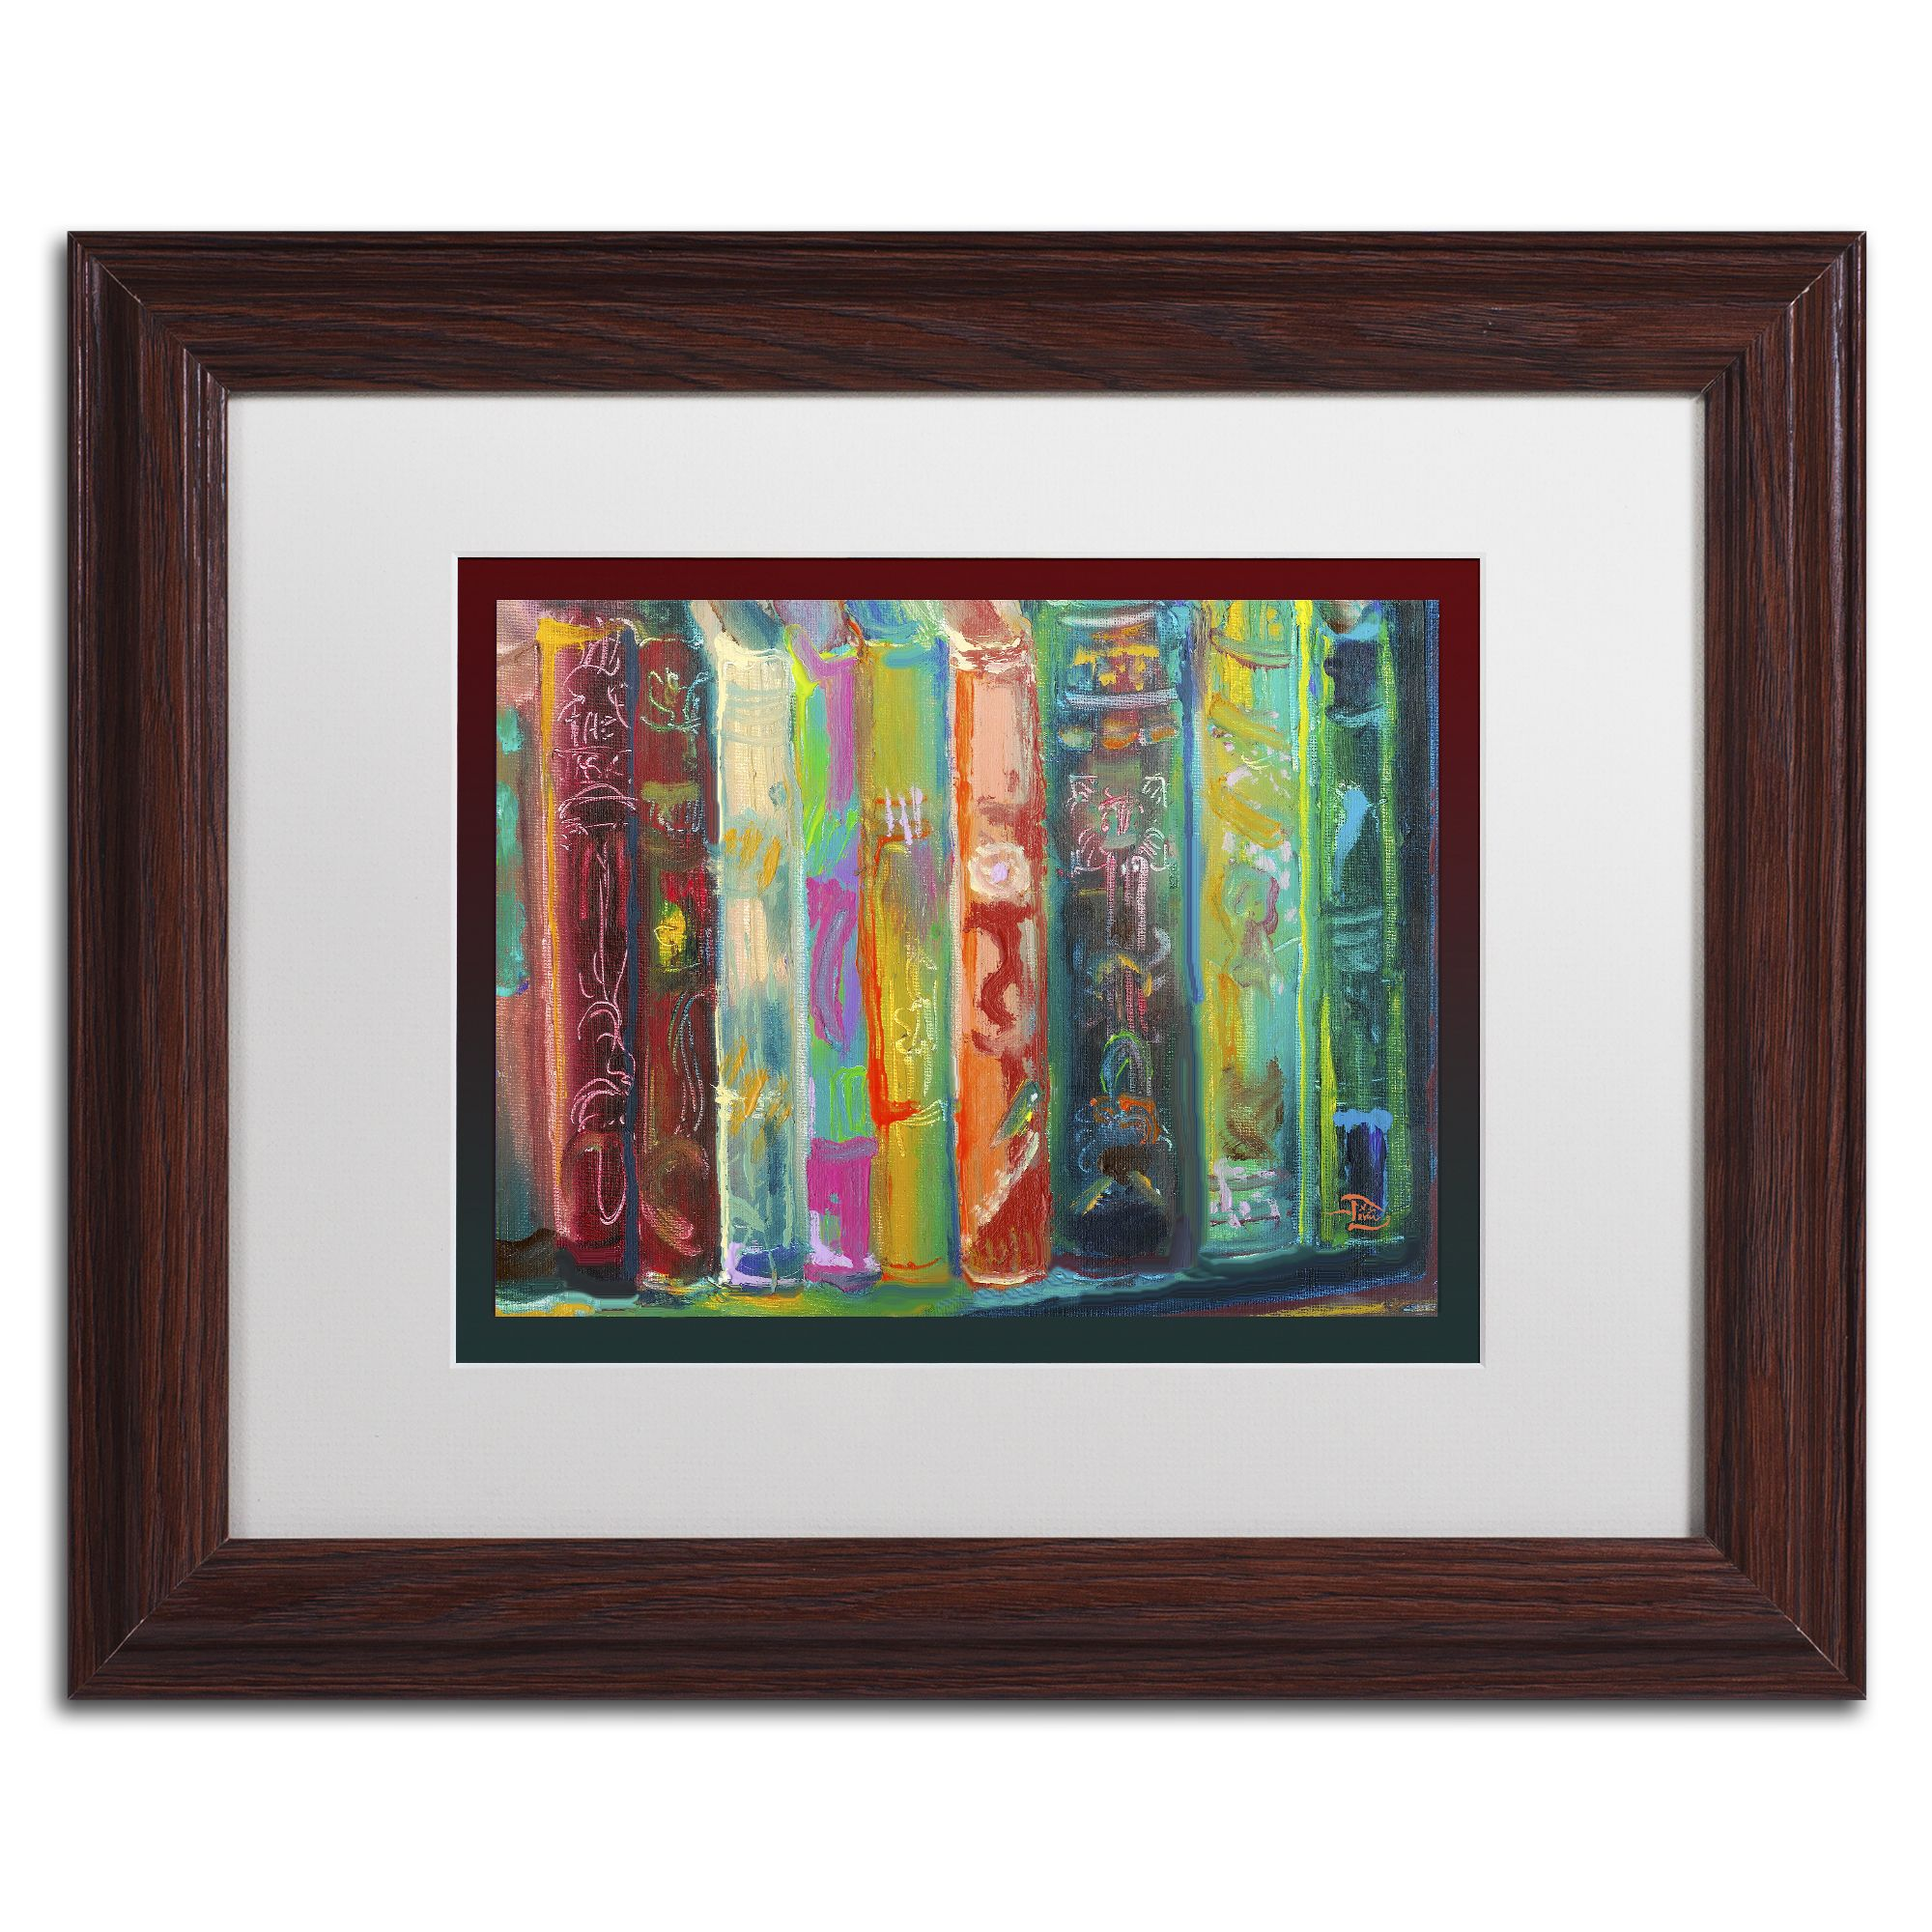 v devin bookends wood framed canvas art - Wood Frames For Canvas Paintings